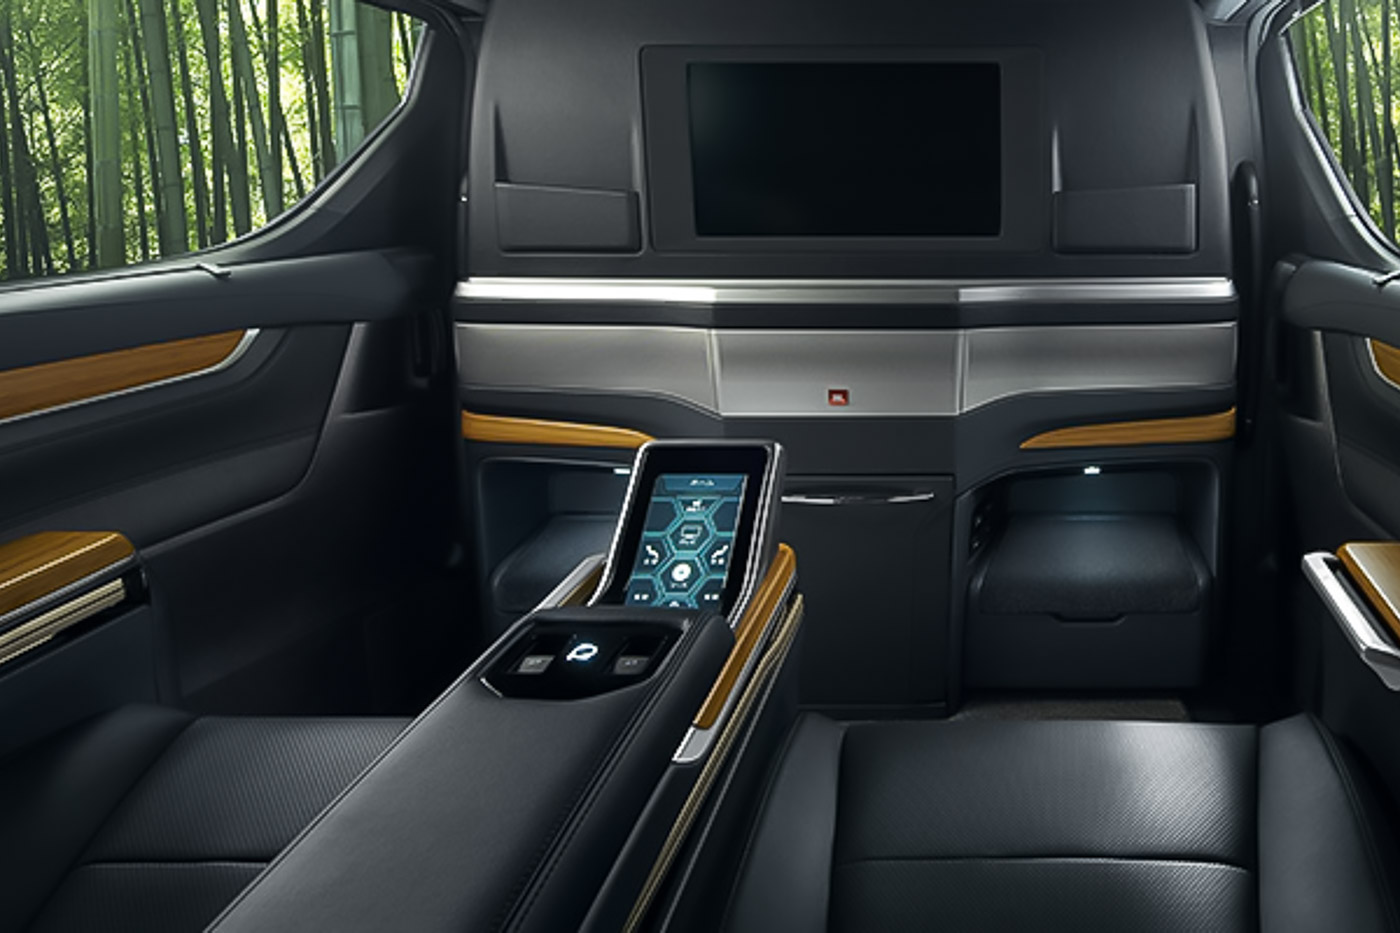 Modellista has made a 4 seater Toyota Alphard/Vellfire, because they